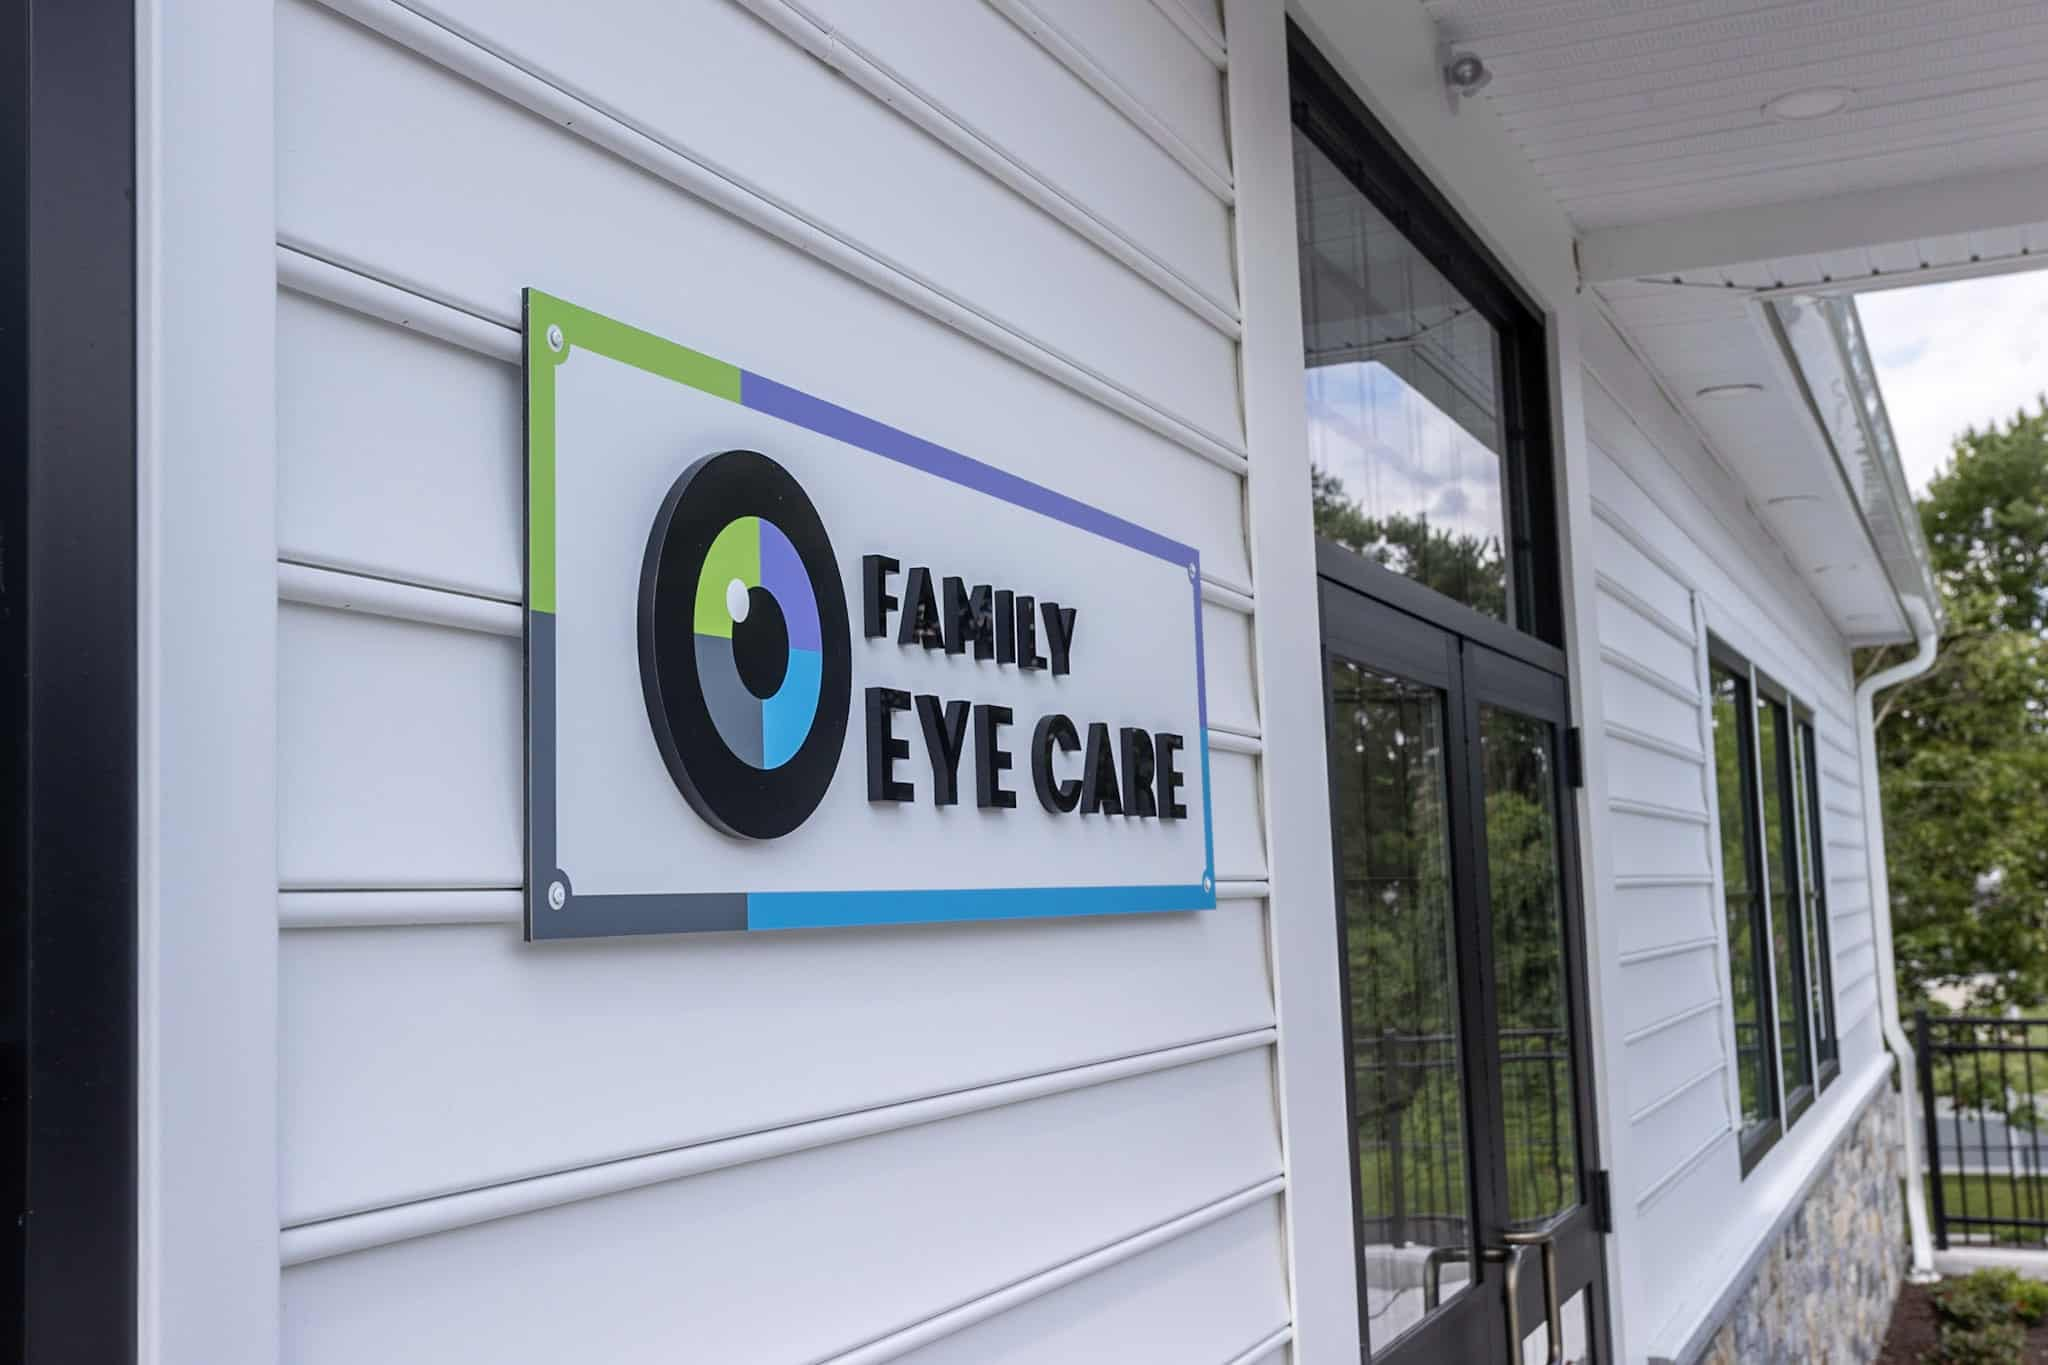 Exterior view of the Family Eye Care Bristol office displaying a sign with the logo inside.